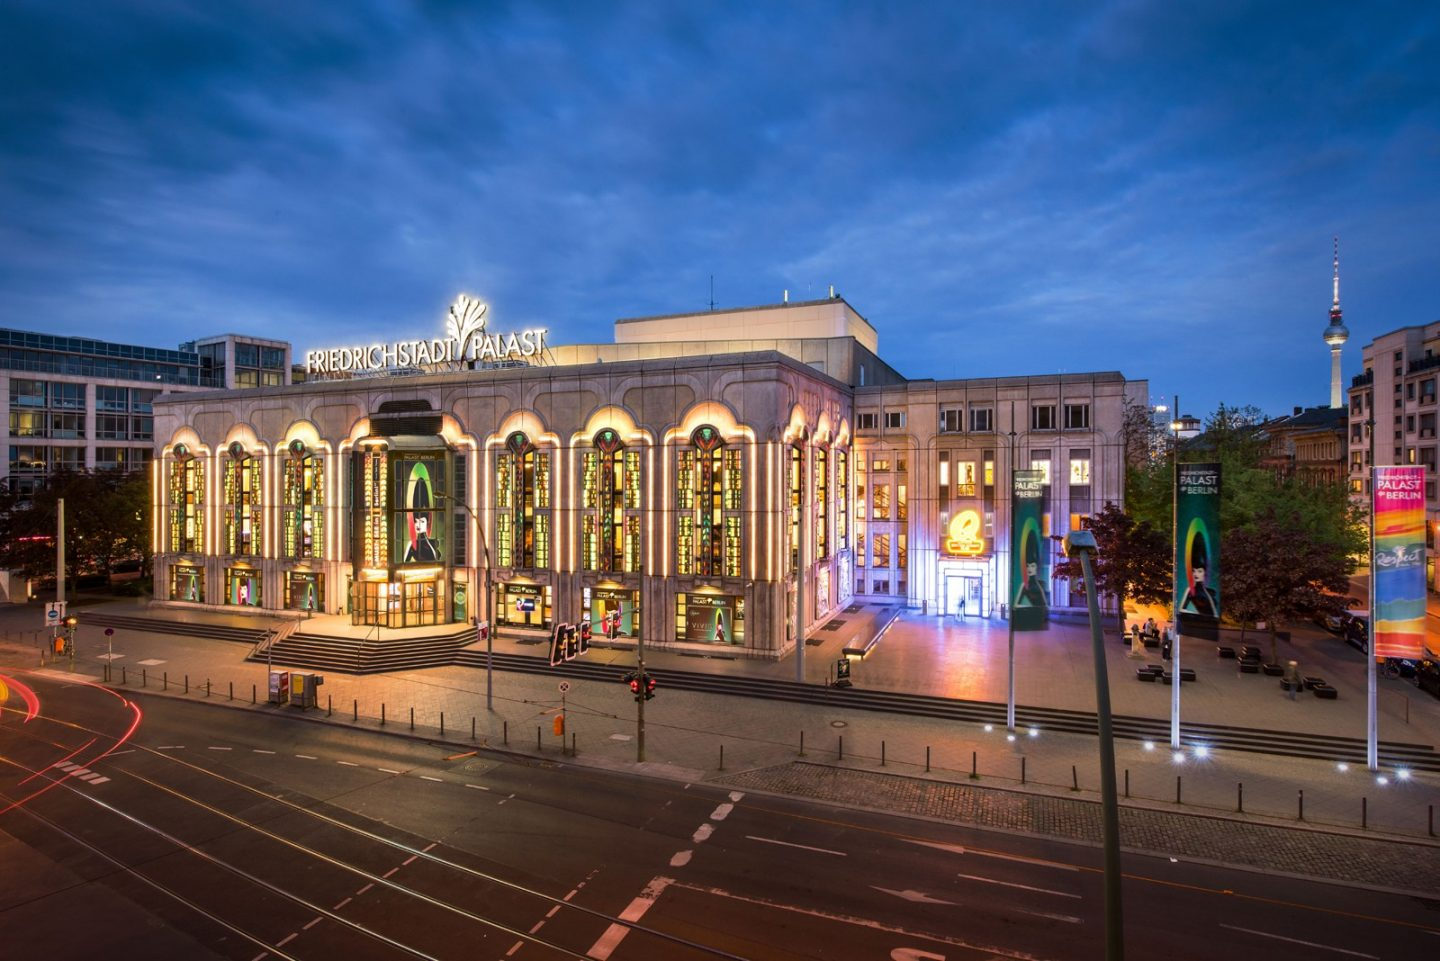 Vivid grand show palast theatre berlin things to do